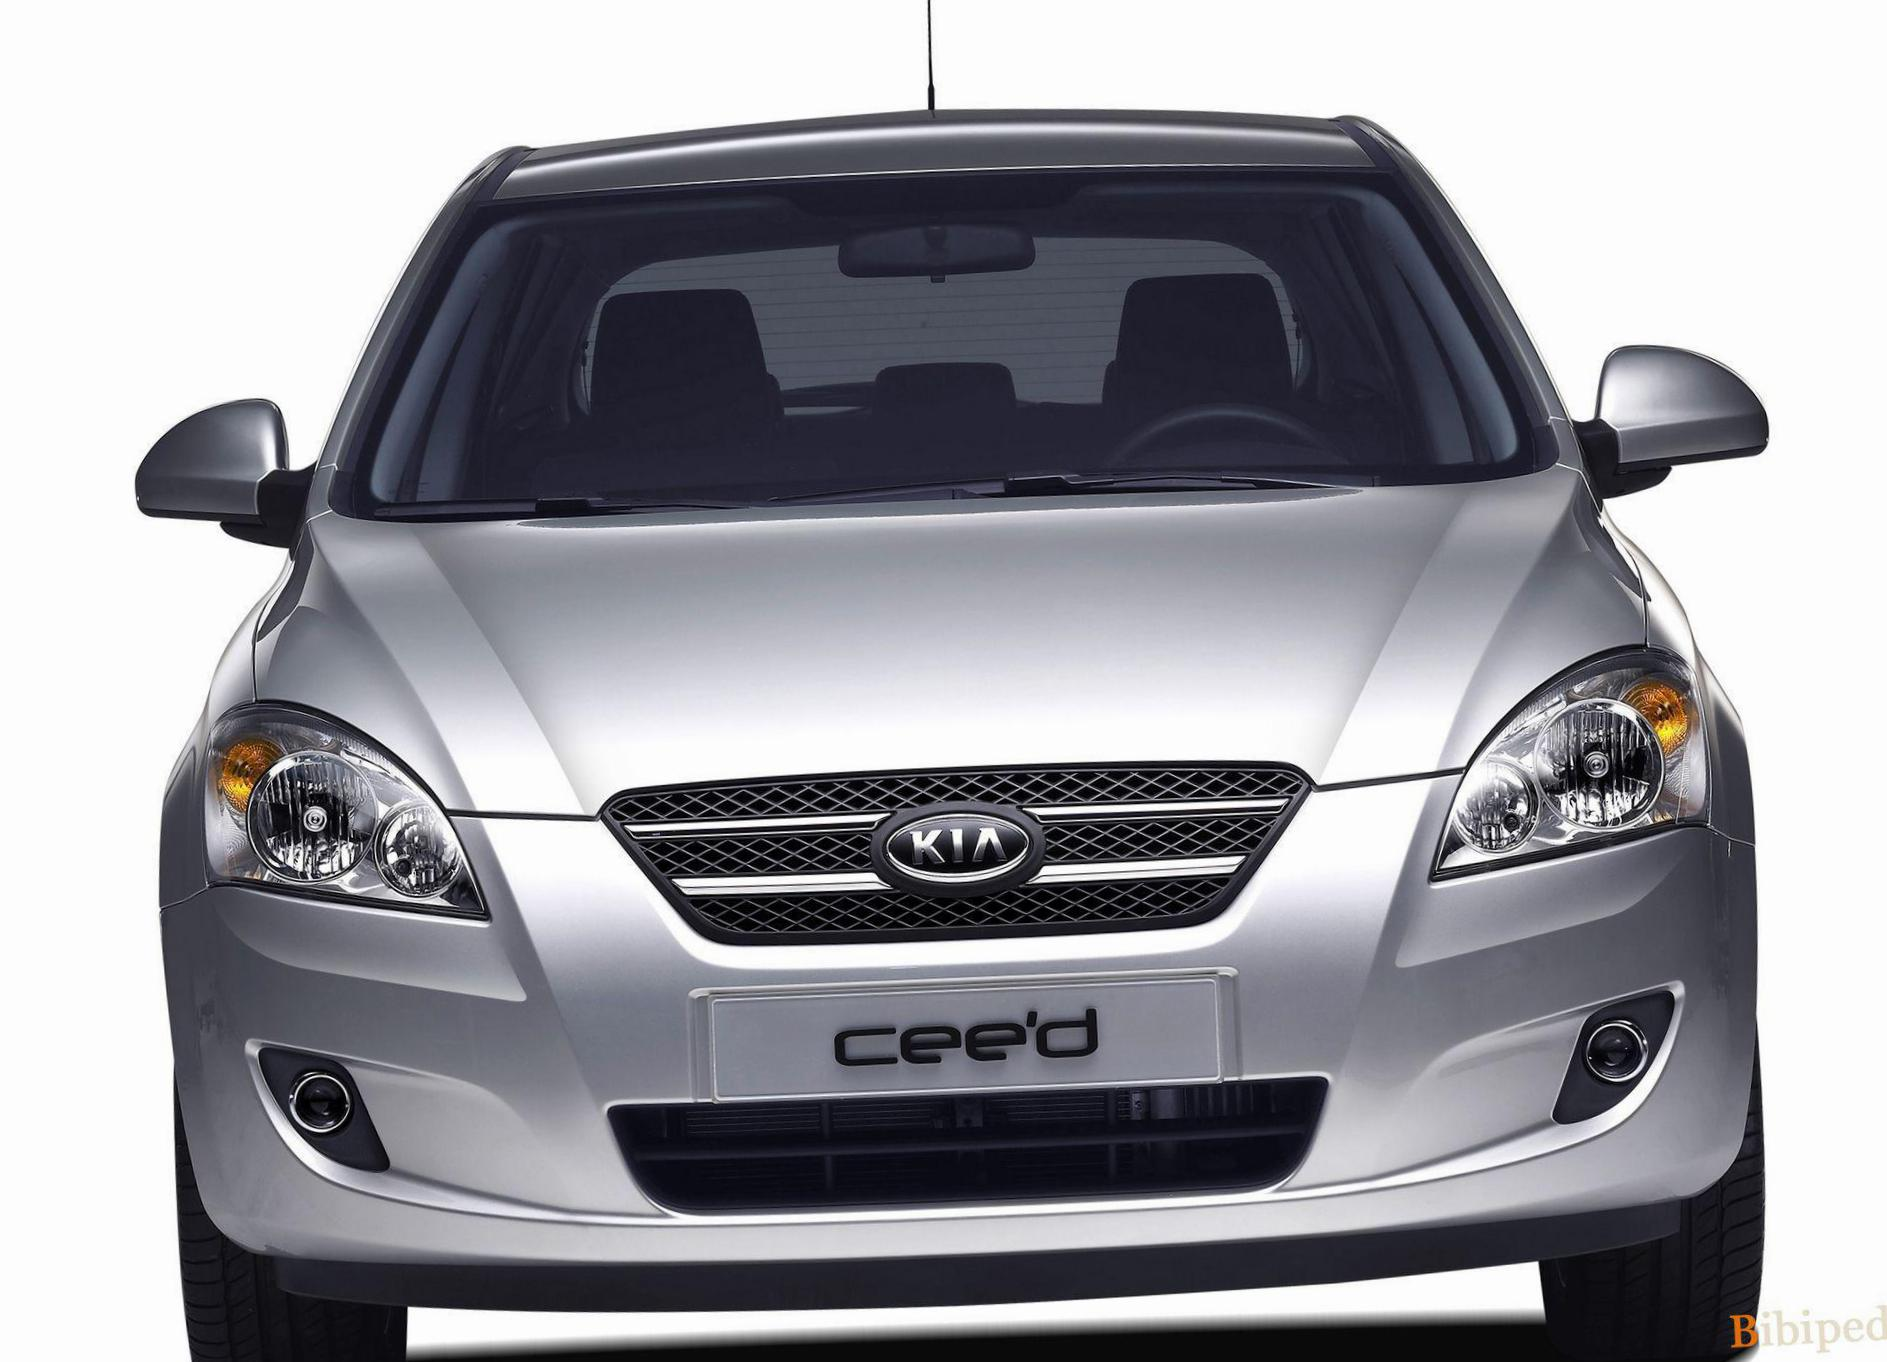 Ceed KIA prices 2011